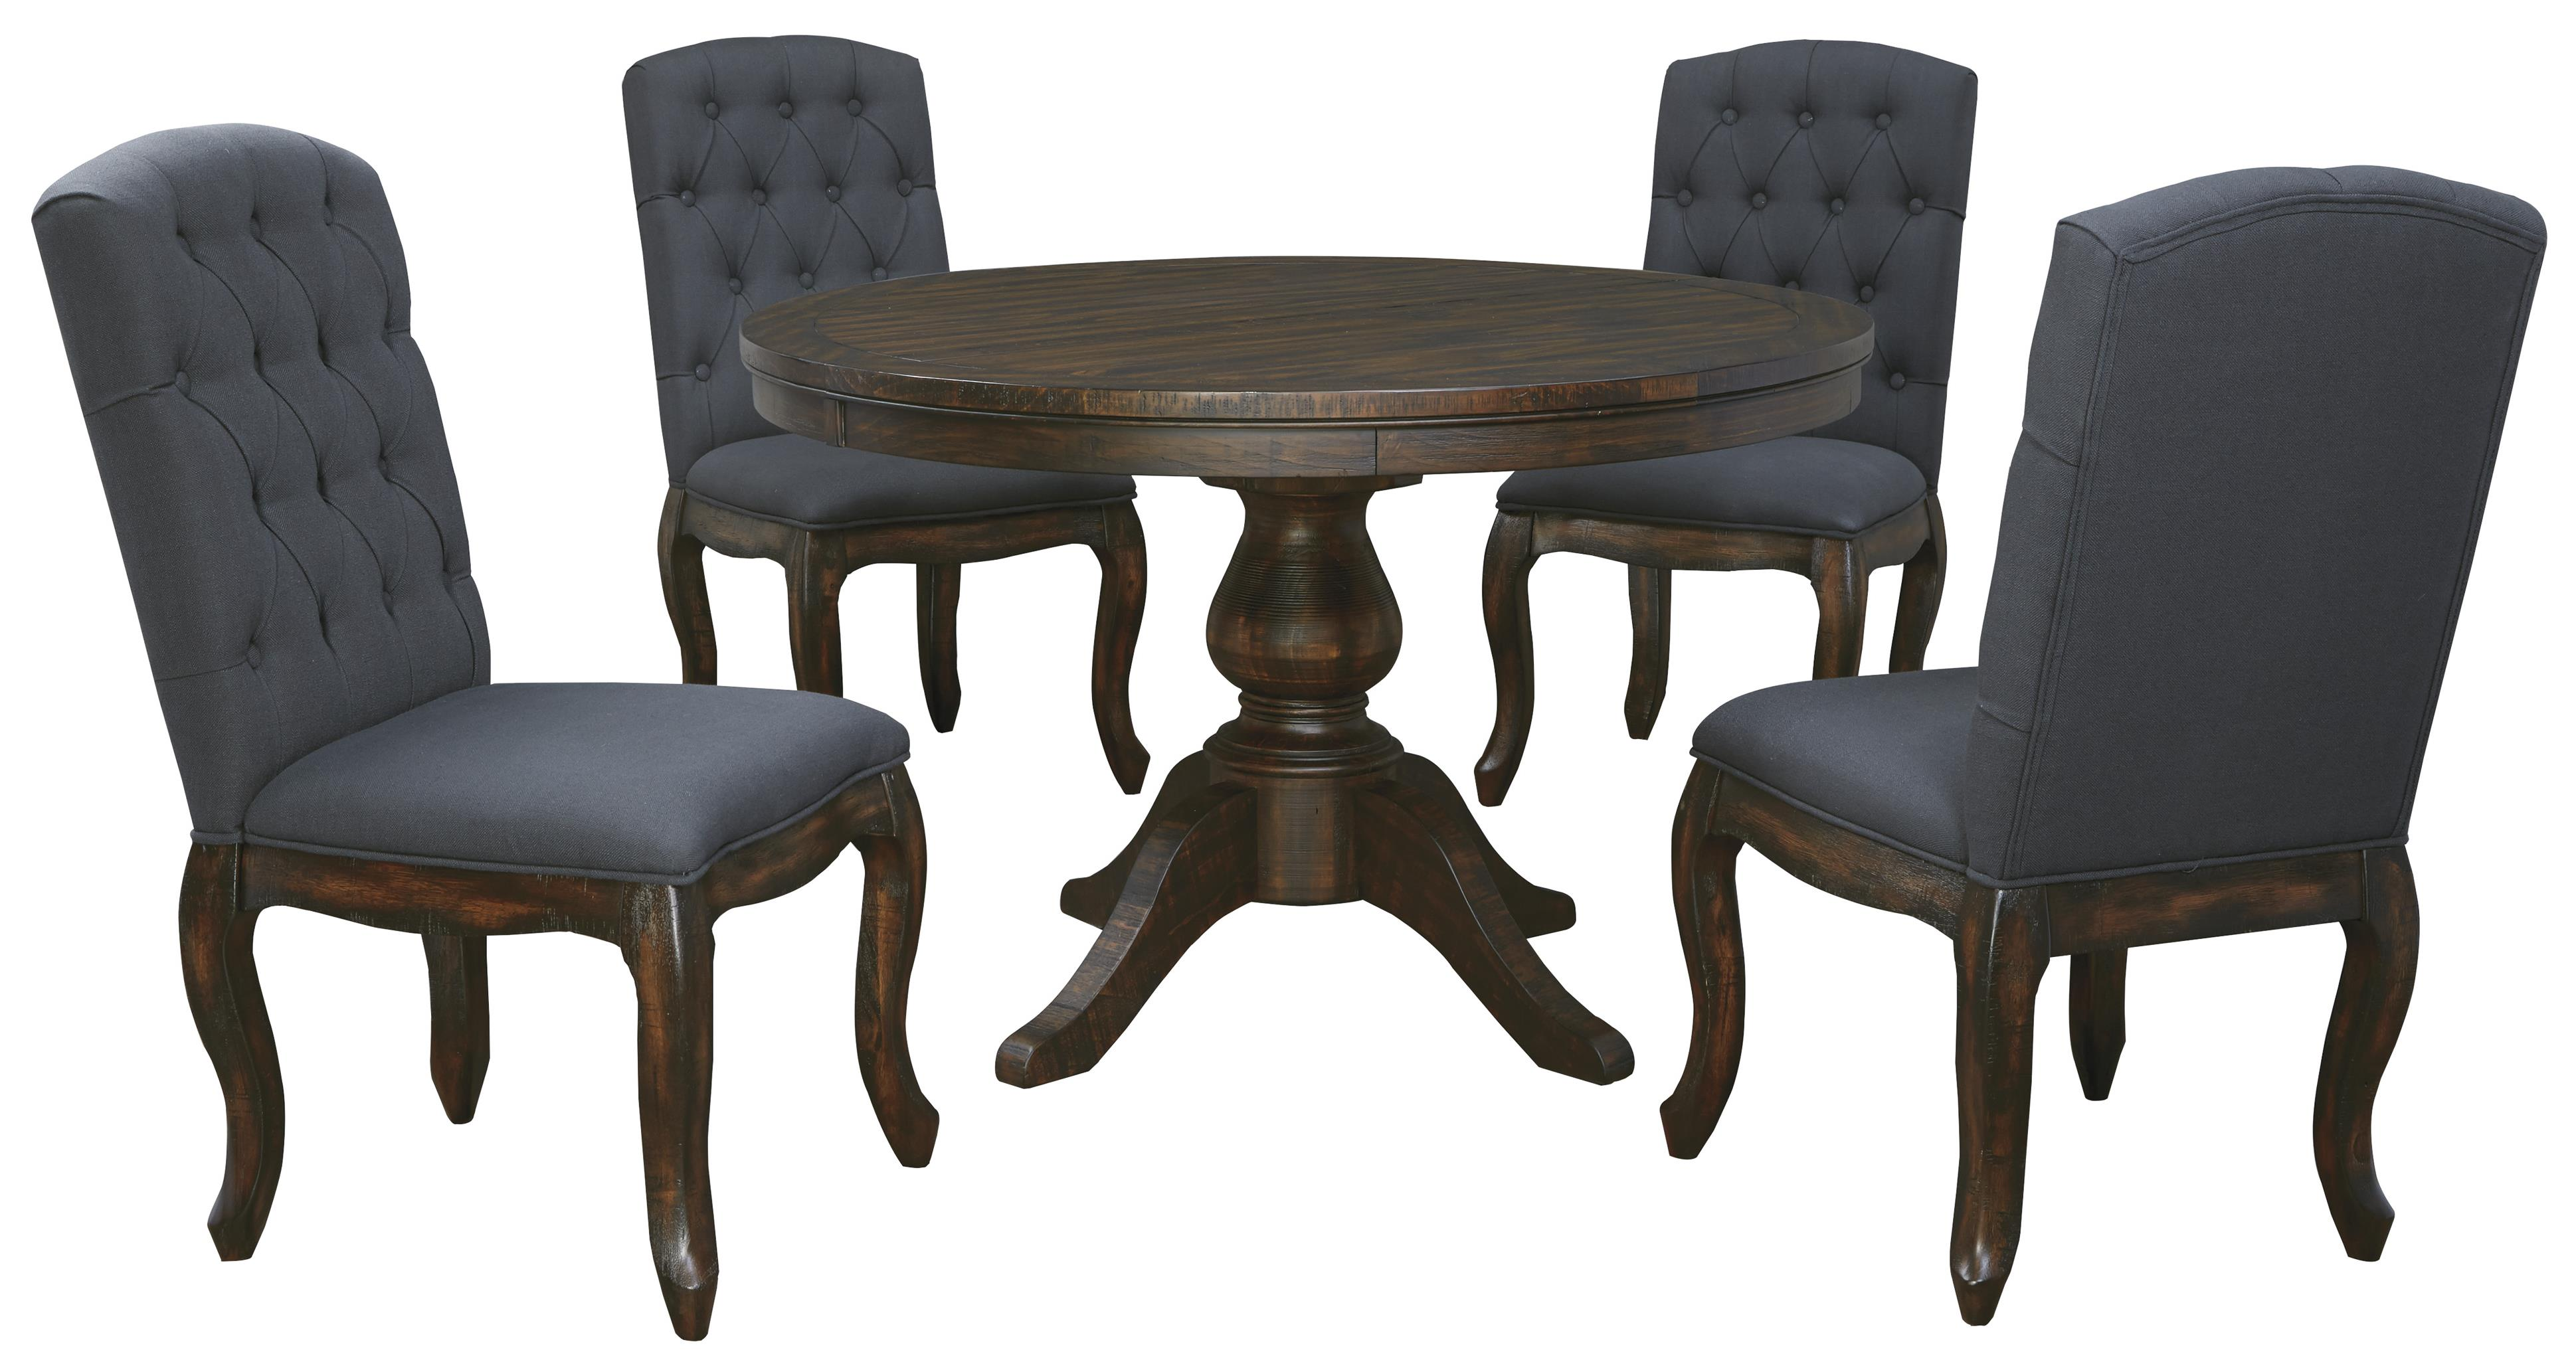 round kitchen table set Signature Design by Ashley Trudell 5 Piece Round Dining Table Set Item Number